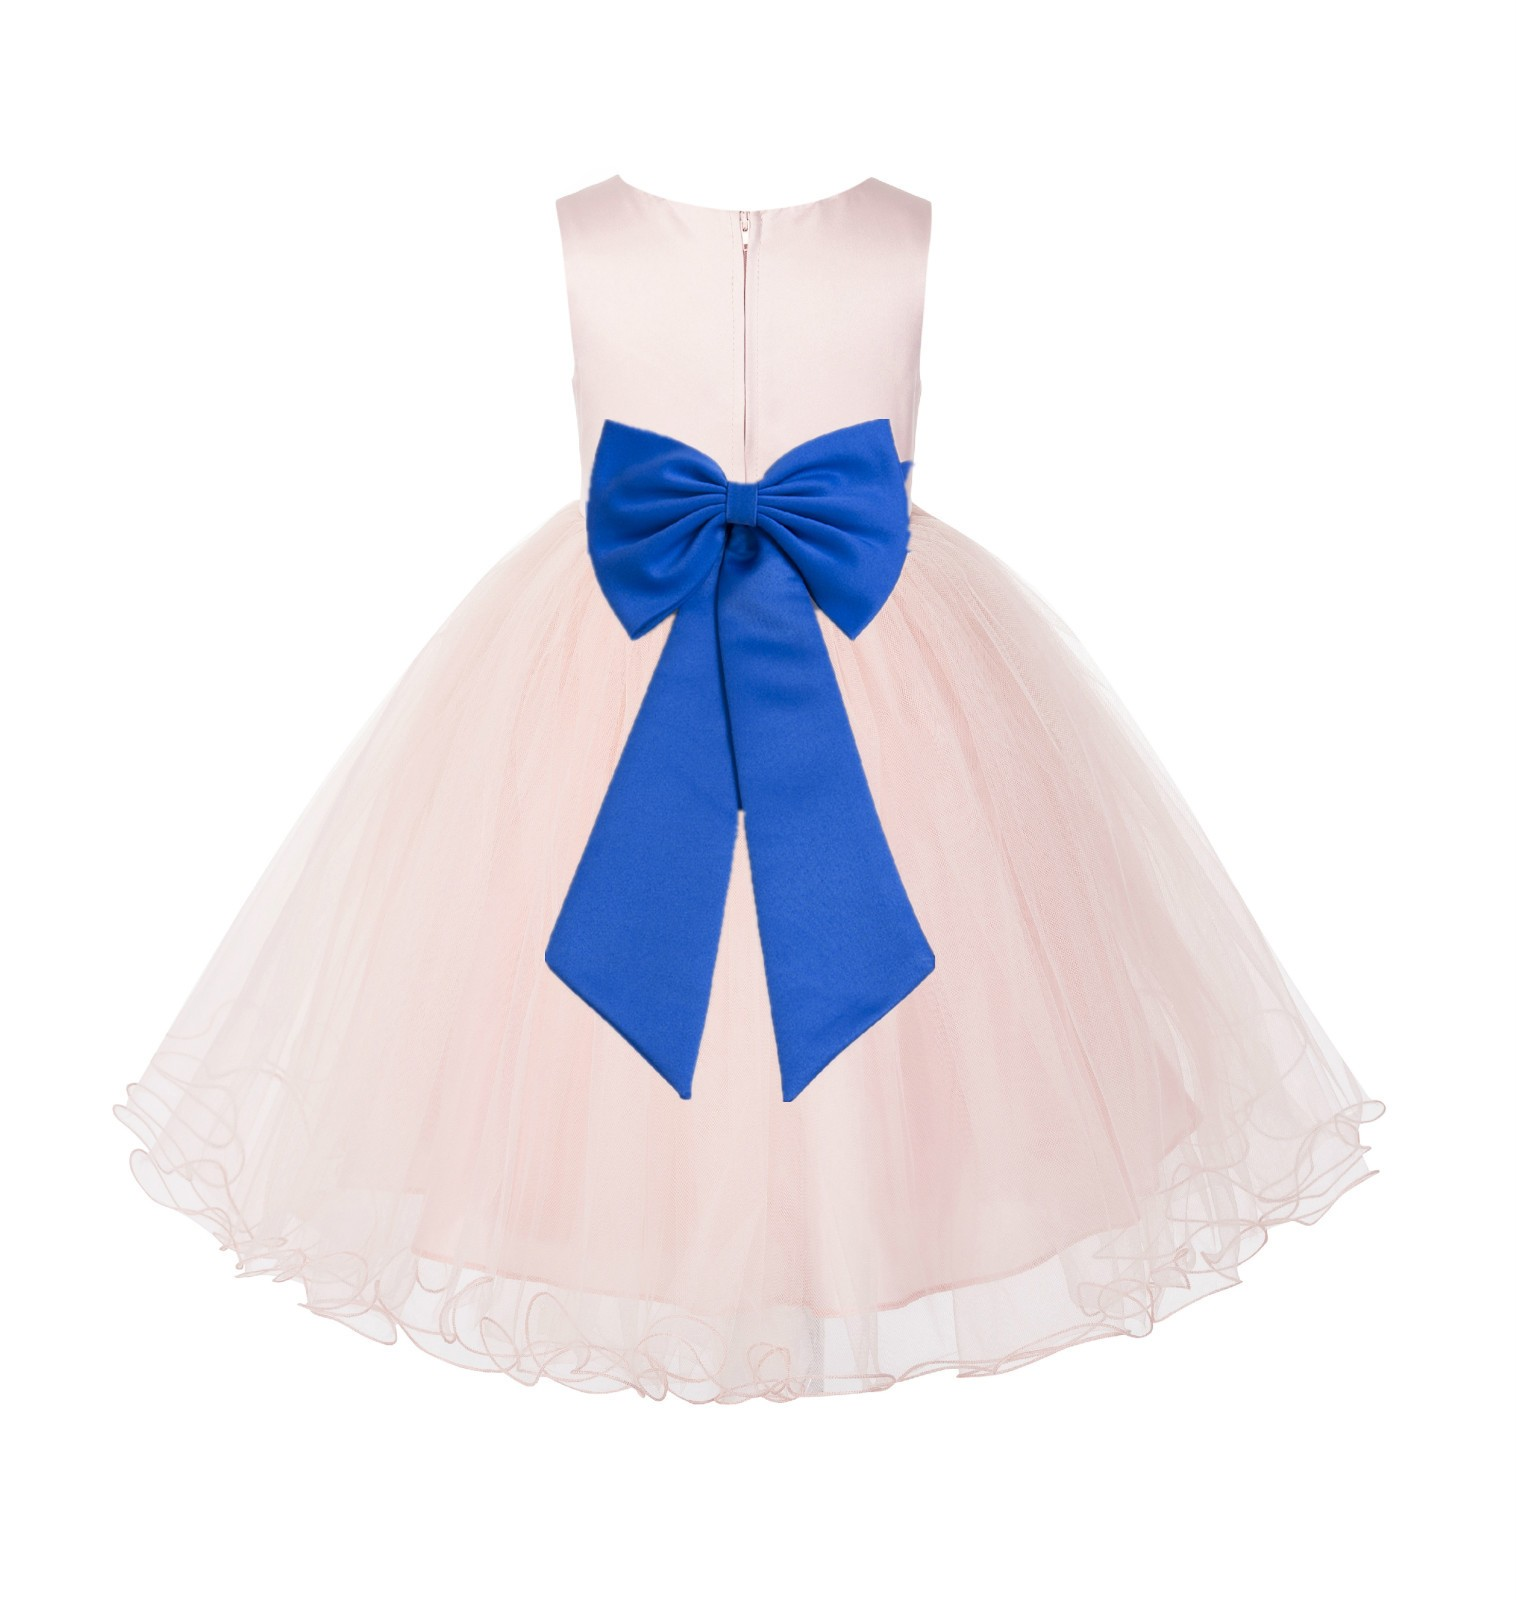 Blush PInk / Royal Blue Tulle Rattail Edge Flower Girl Dress Wedding Bridesmaid 829T